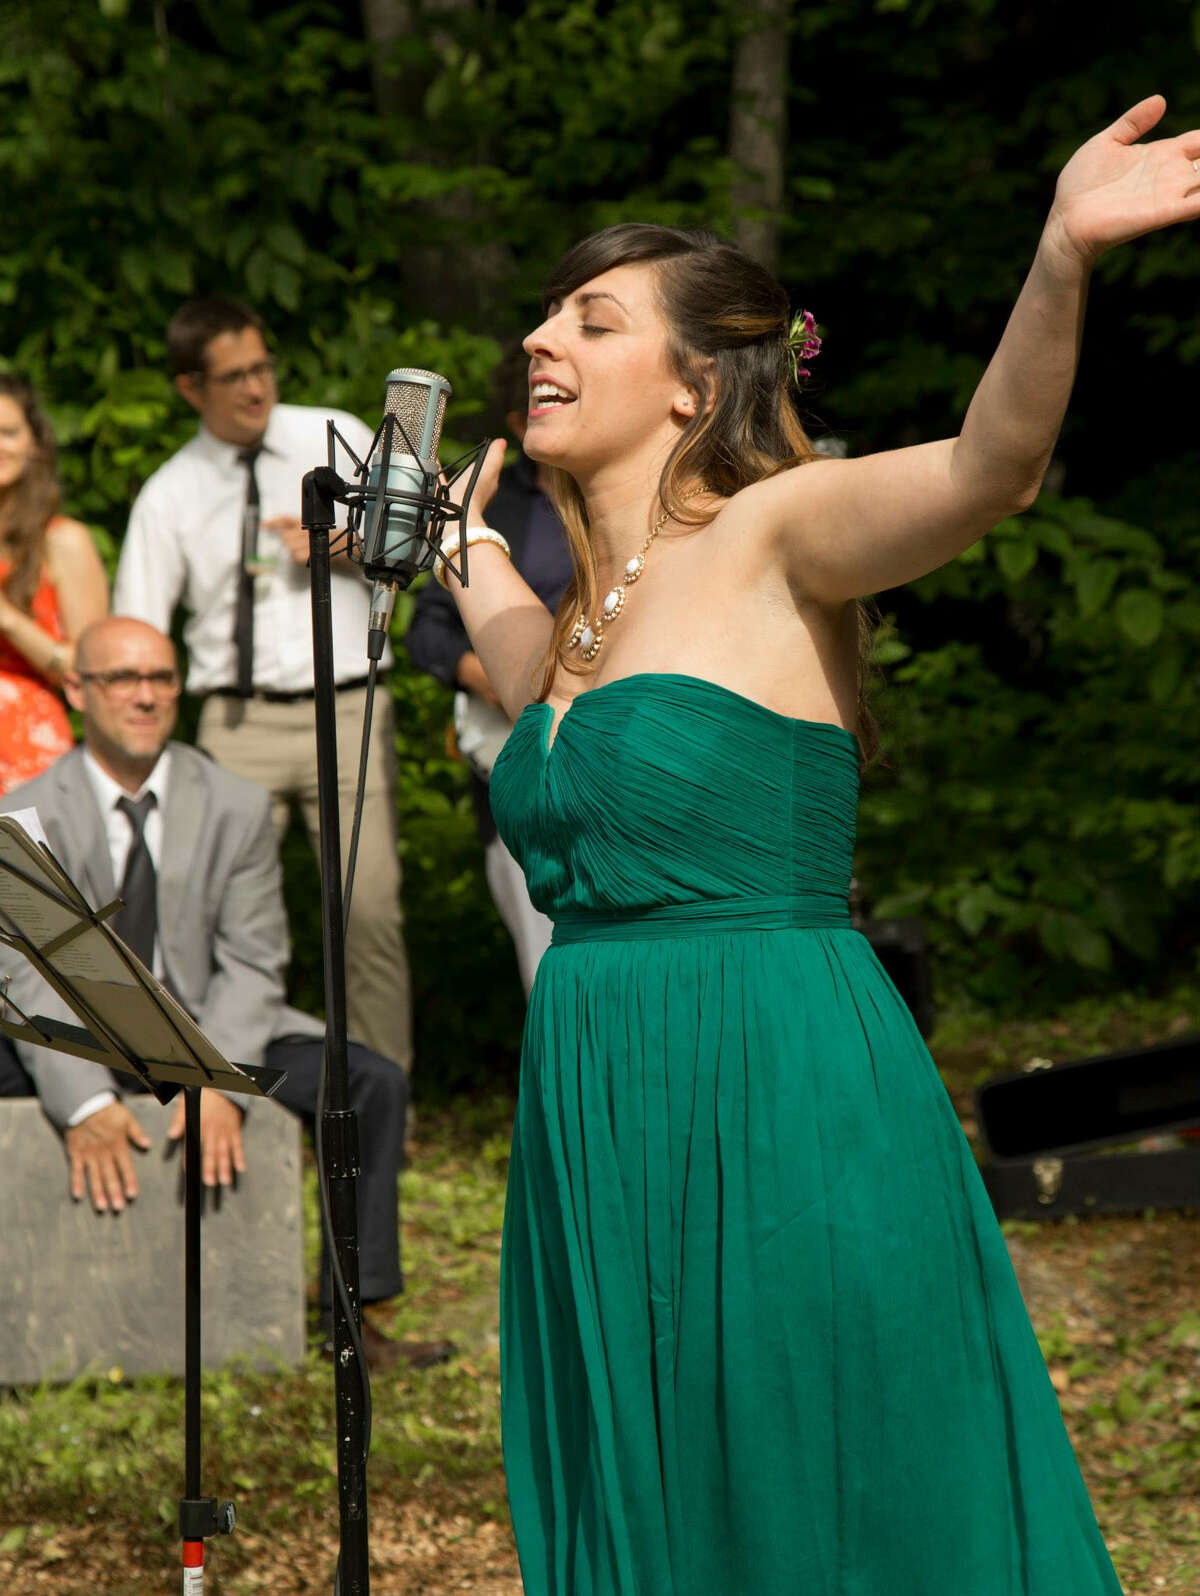 Emily Curro, this is a photo of her singing at her sister's wedding in Blandford, Mass. Photographer is Cindy Rzonca